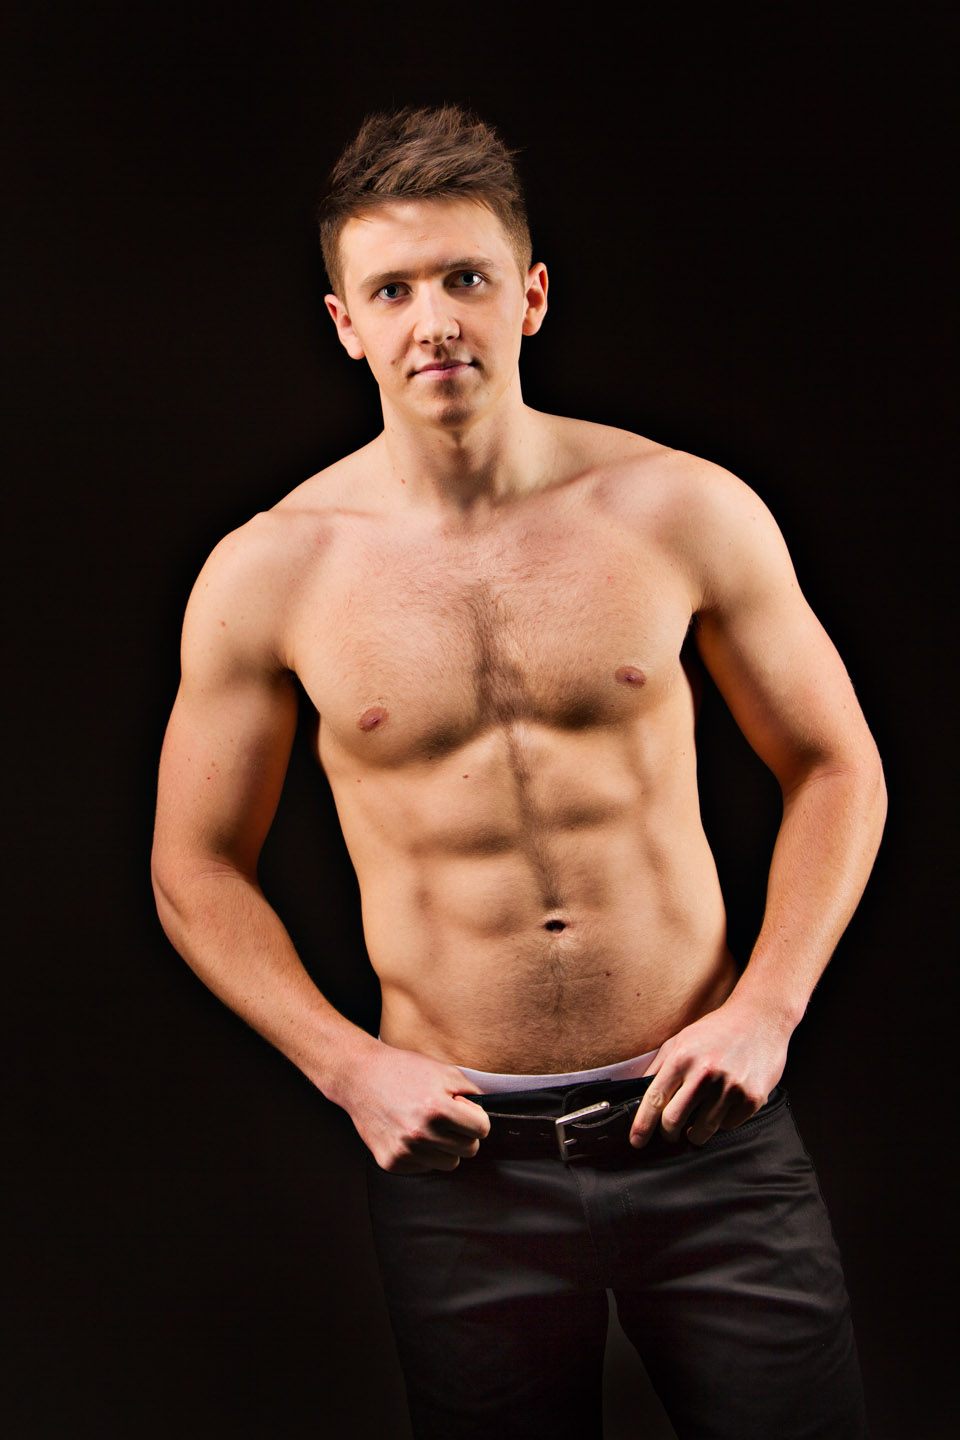 Some shirtless male model photo